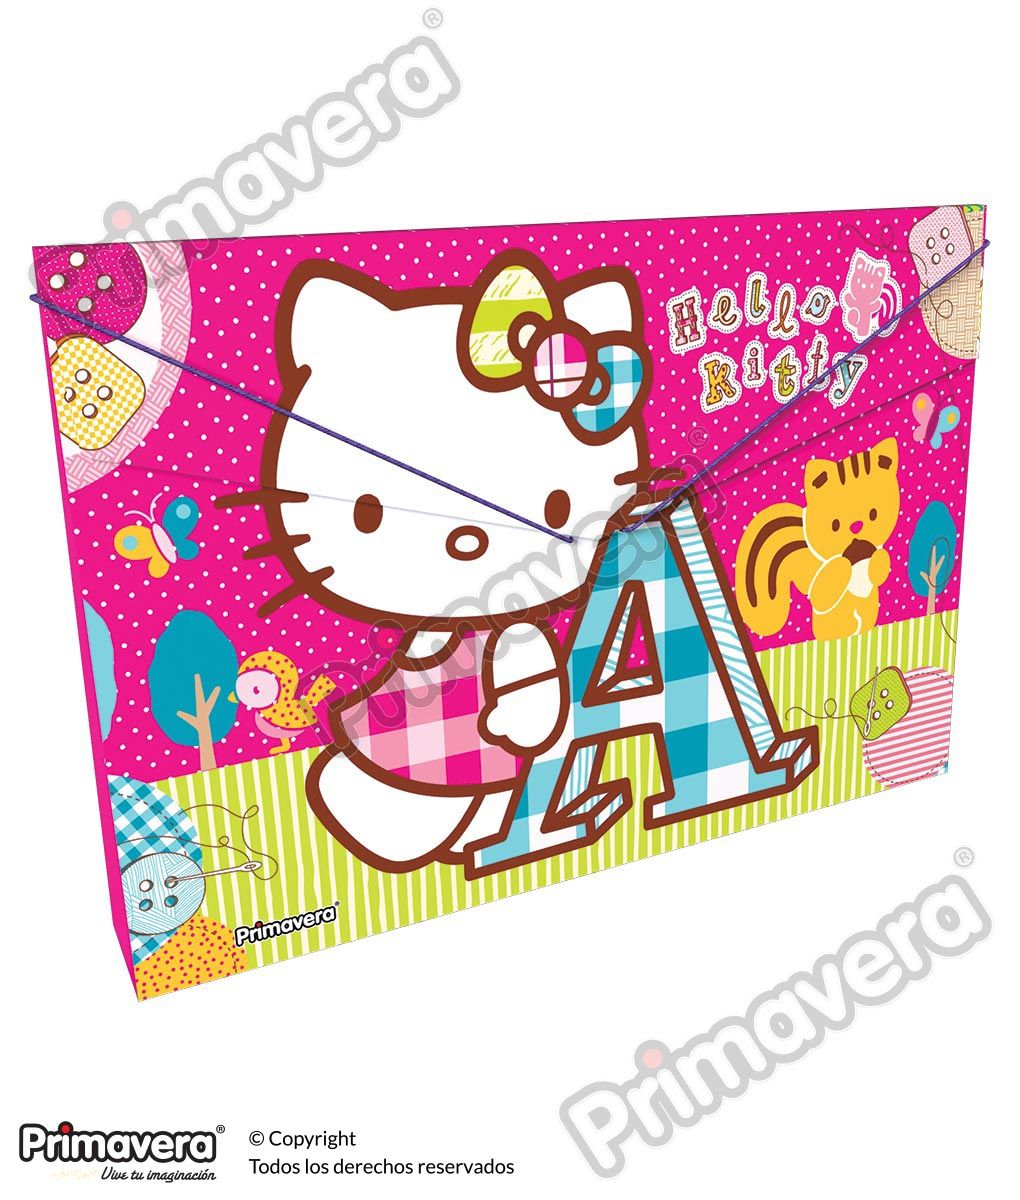 Carpeta Plástica Fuelle Hello Kitty http://escolar.papelesprimavera.com/product/carpeta-plastica-fuelle-hello-kitty-primavera-7/